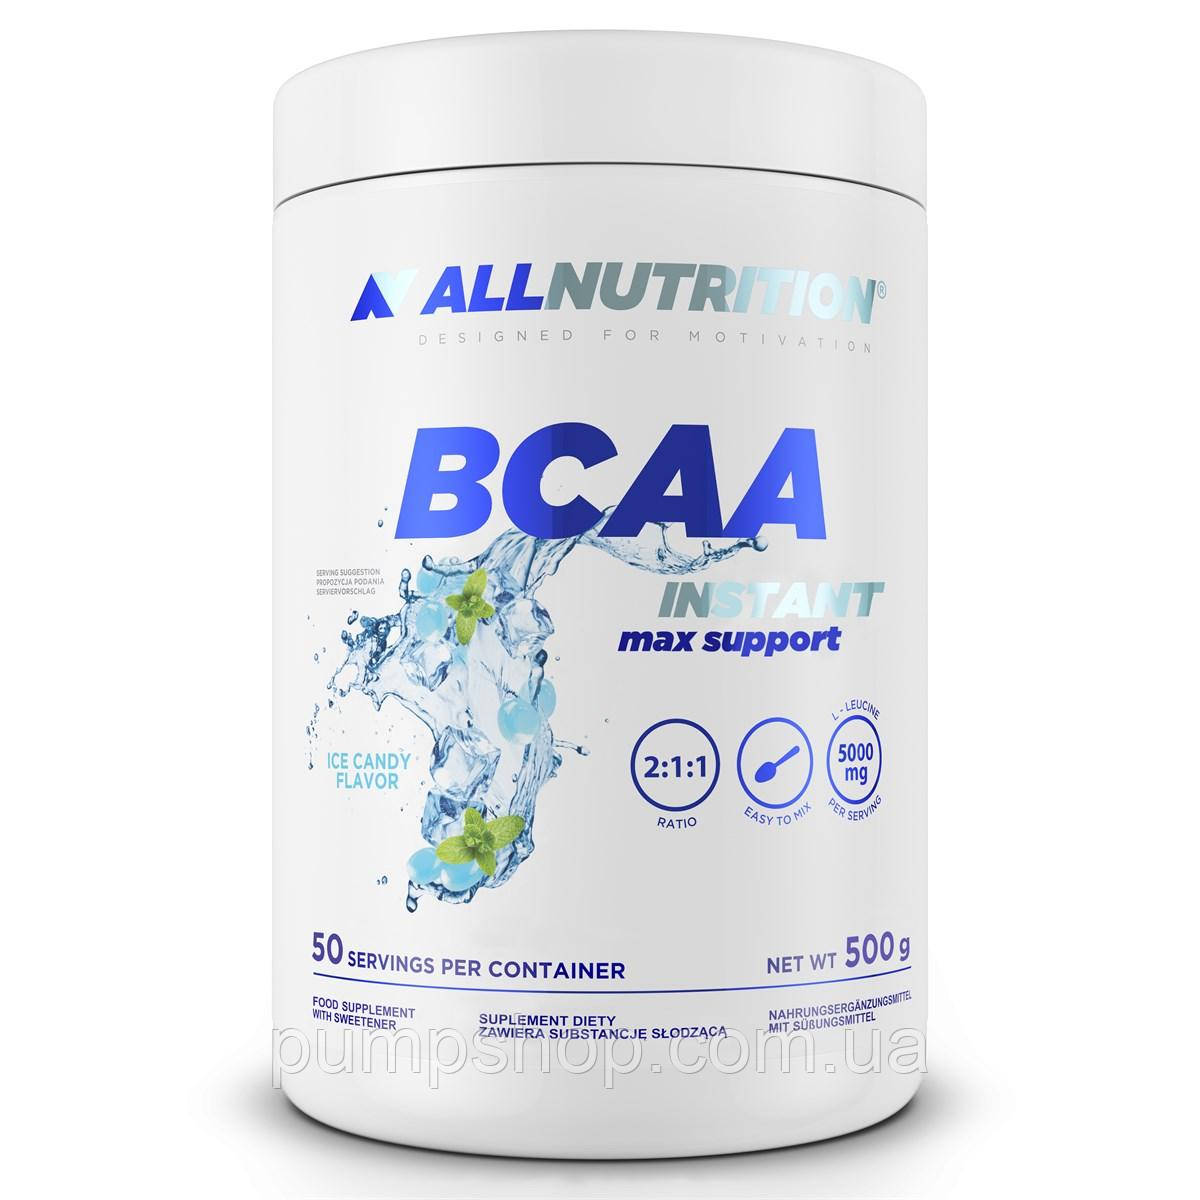 Бцаа инстант AllNutrition BCAA Instant max support 500 г